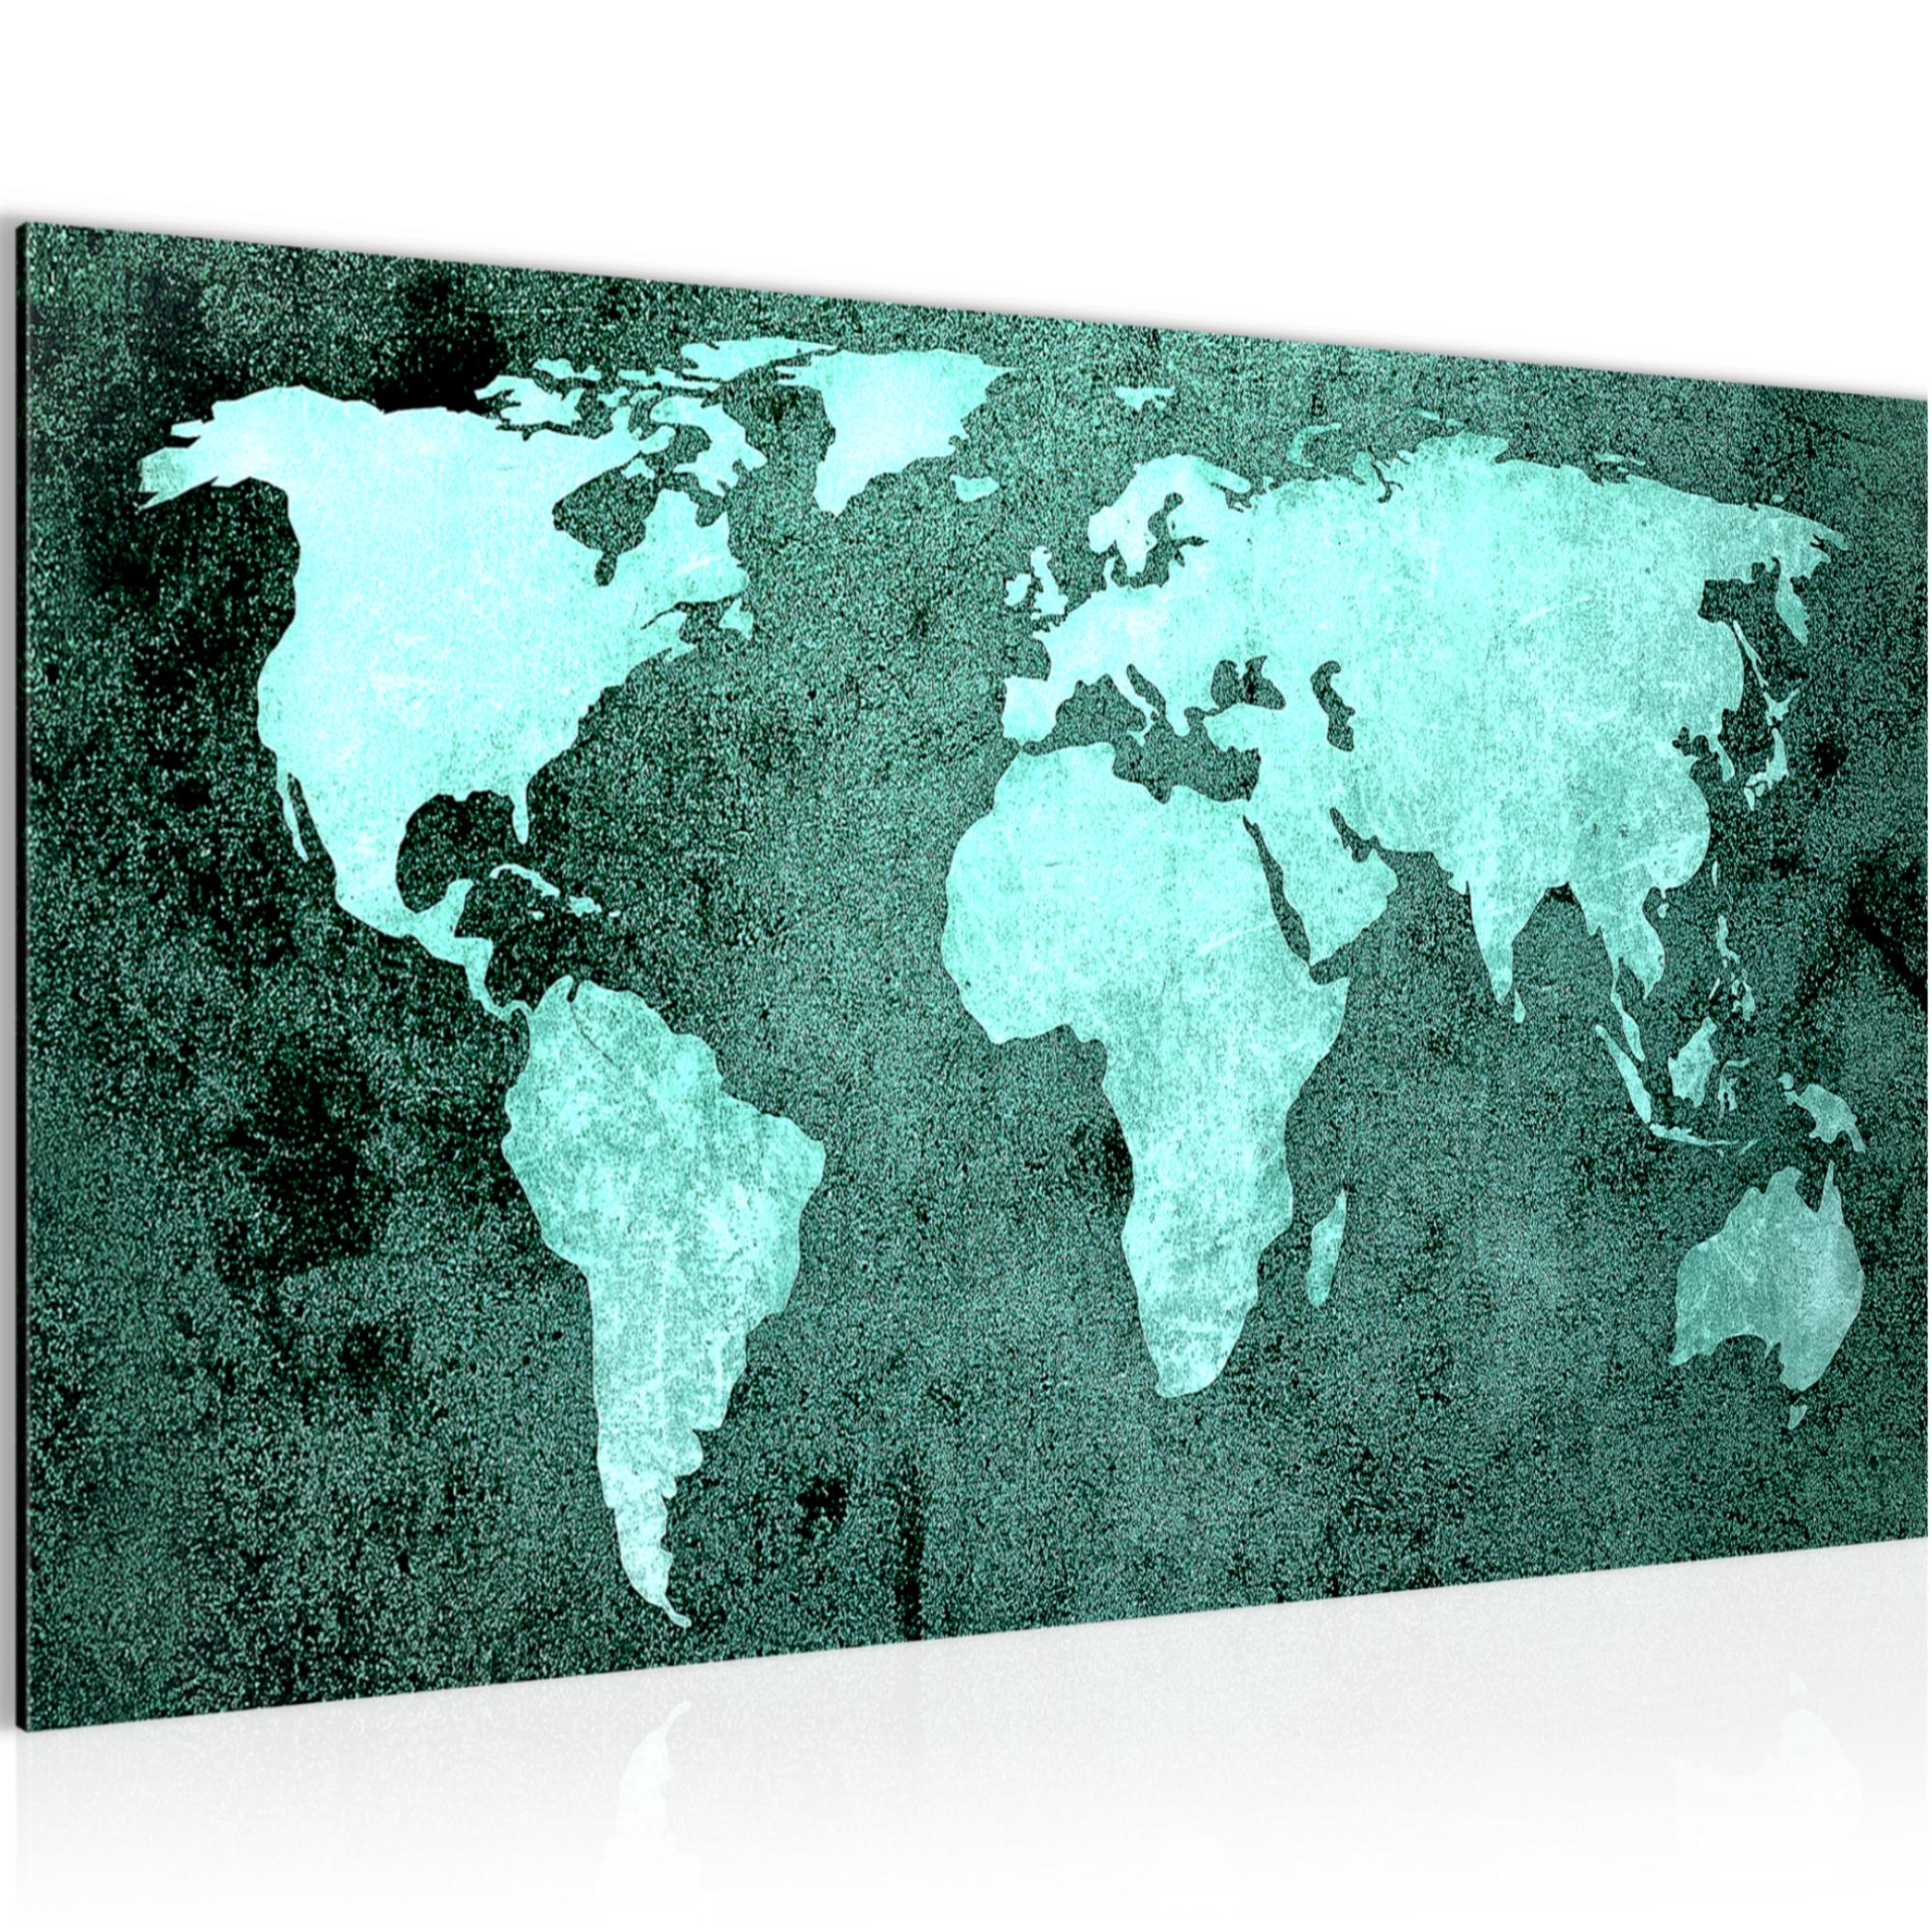 weltkarte world map bild kunstdruck auf vlies leinwand xxl dekoration 101714p. Black Bedroom Furniture Sets. Home Design Ideas